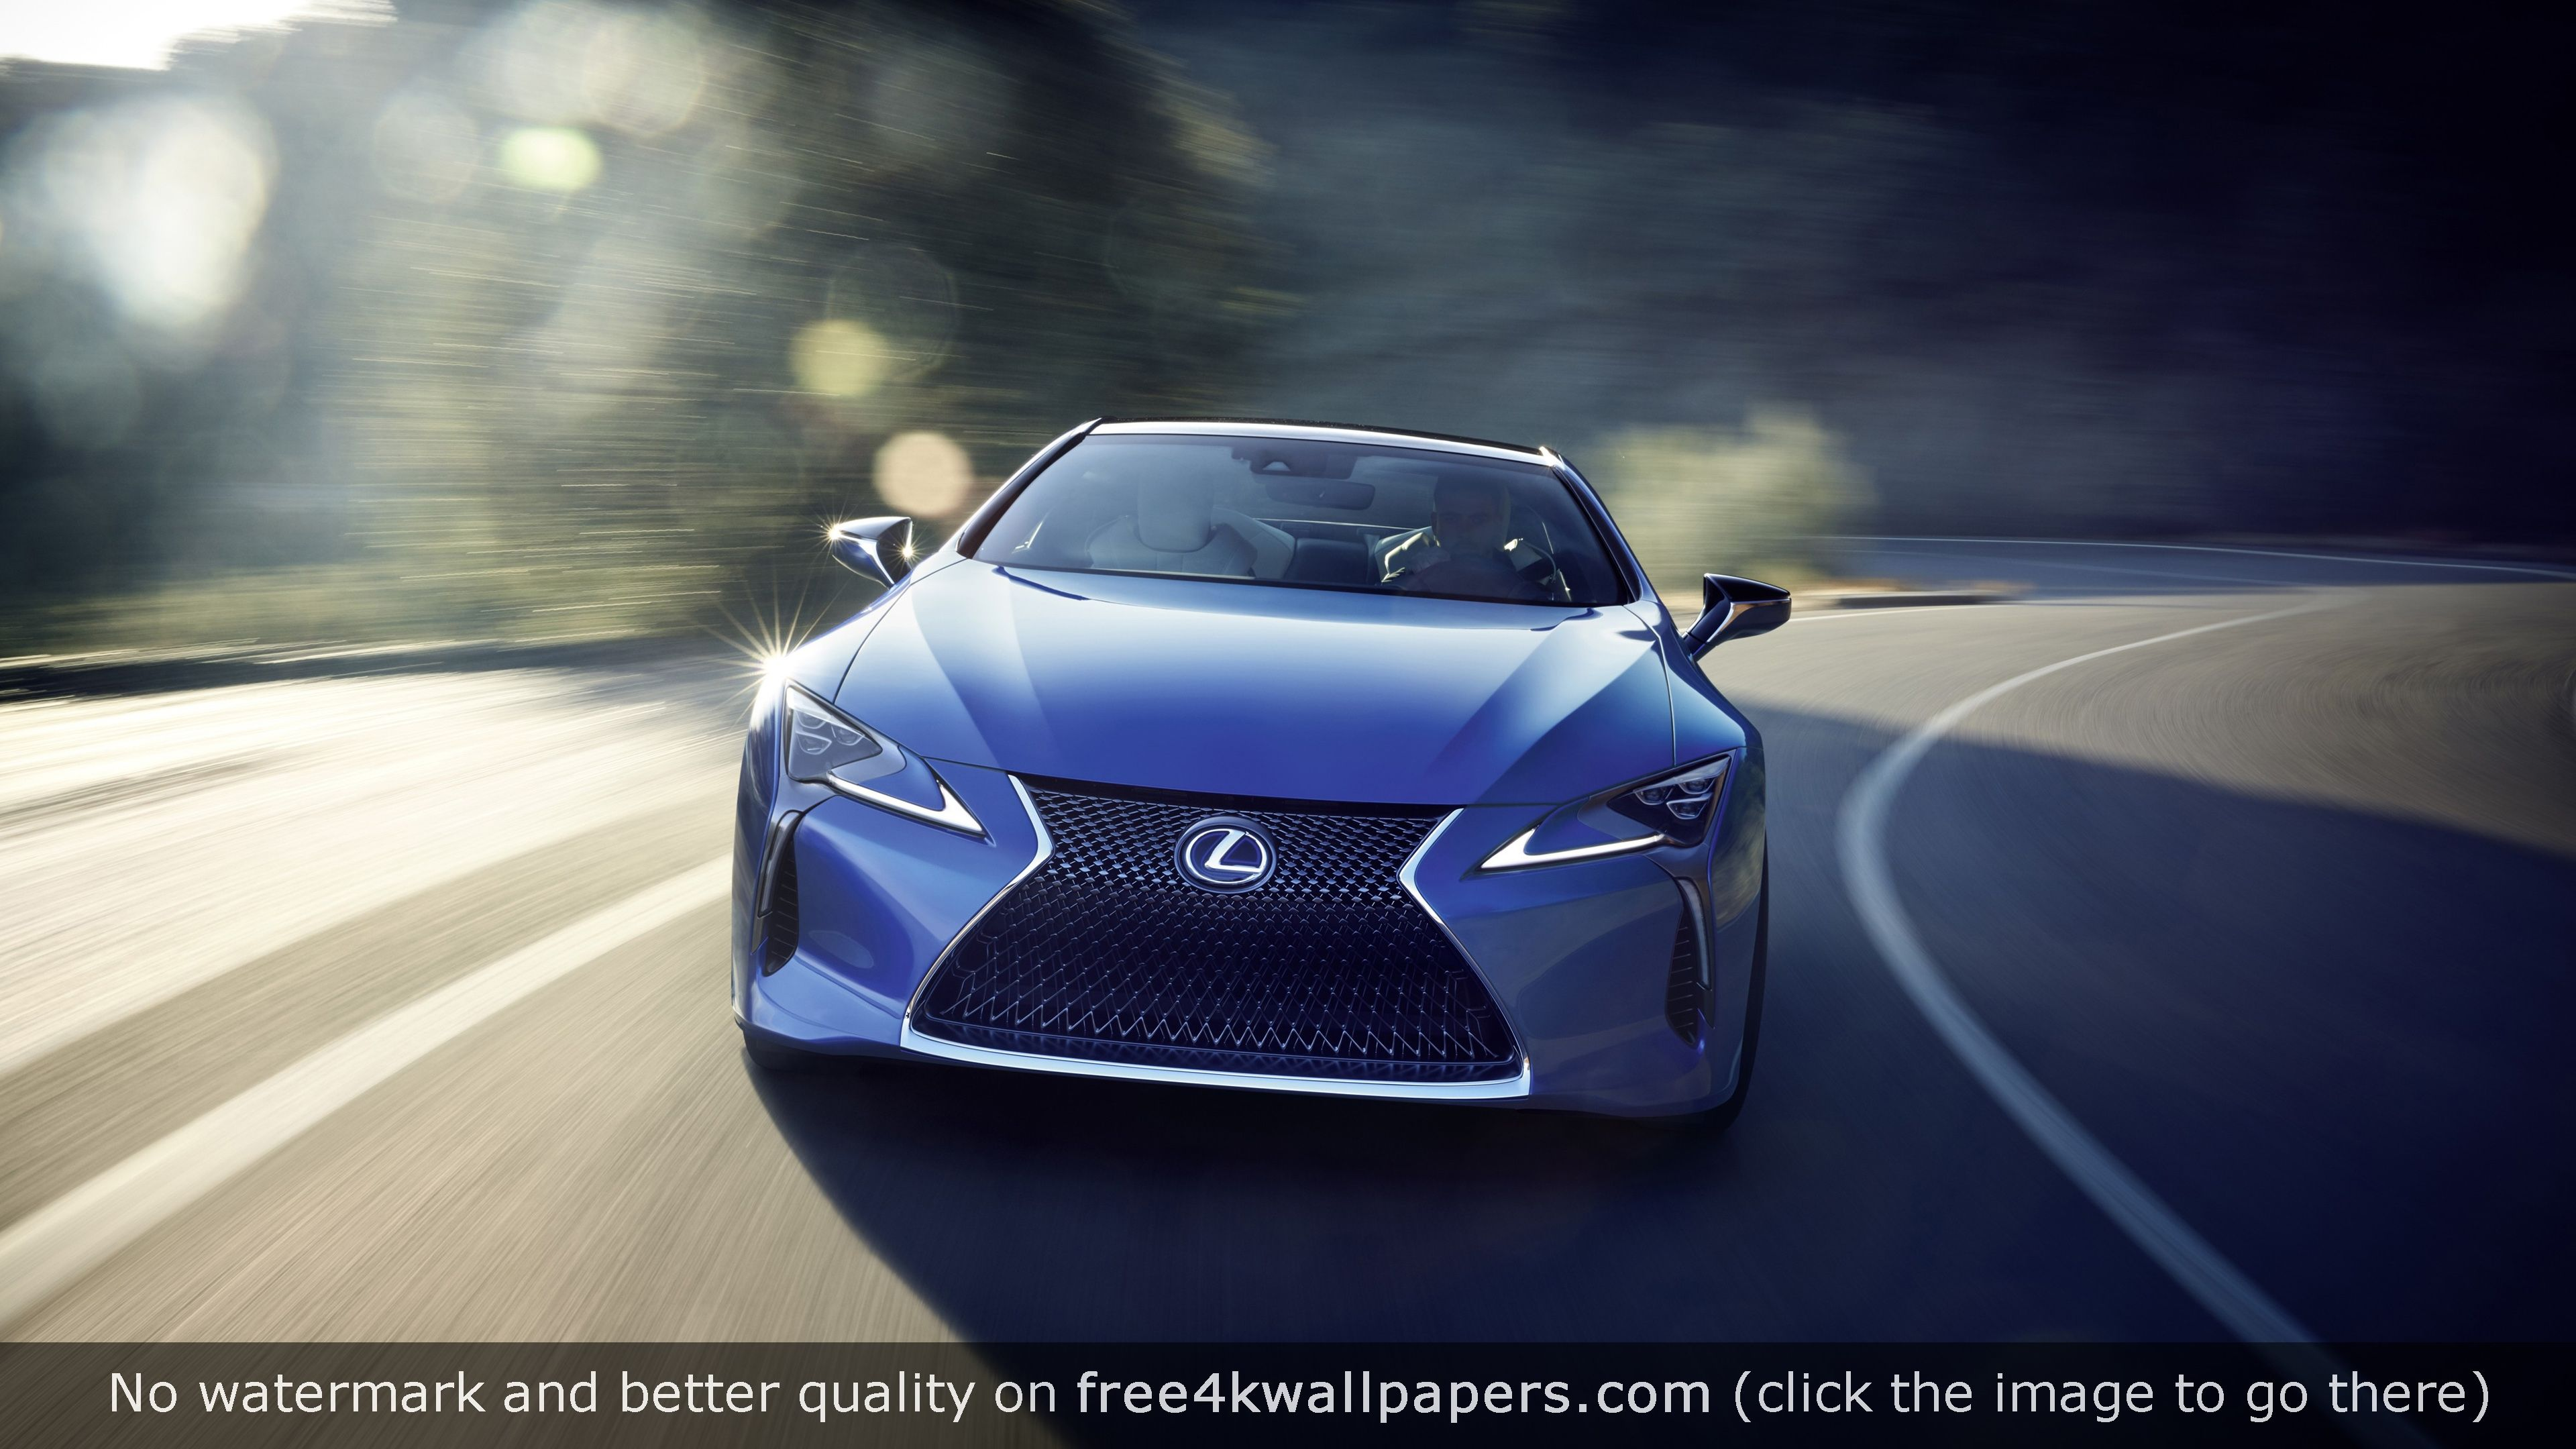 Lexus Lc 2017 4k Or Hd Wallpaper For Your Pc Mac Or Mobile Device